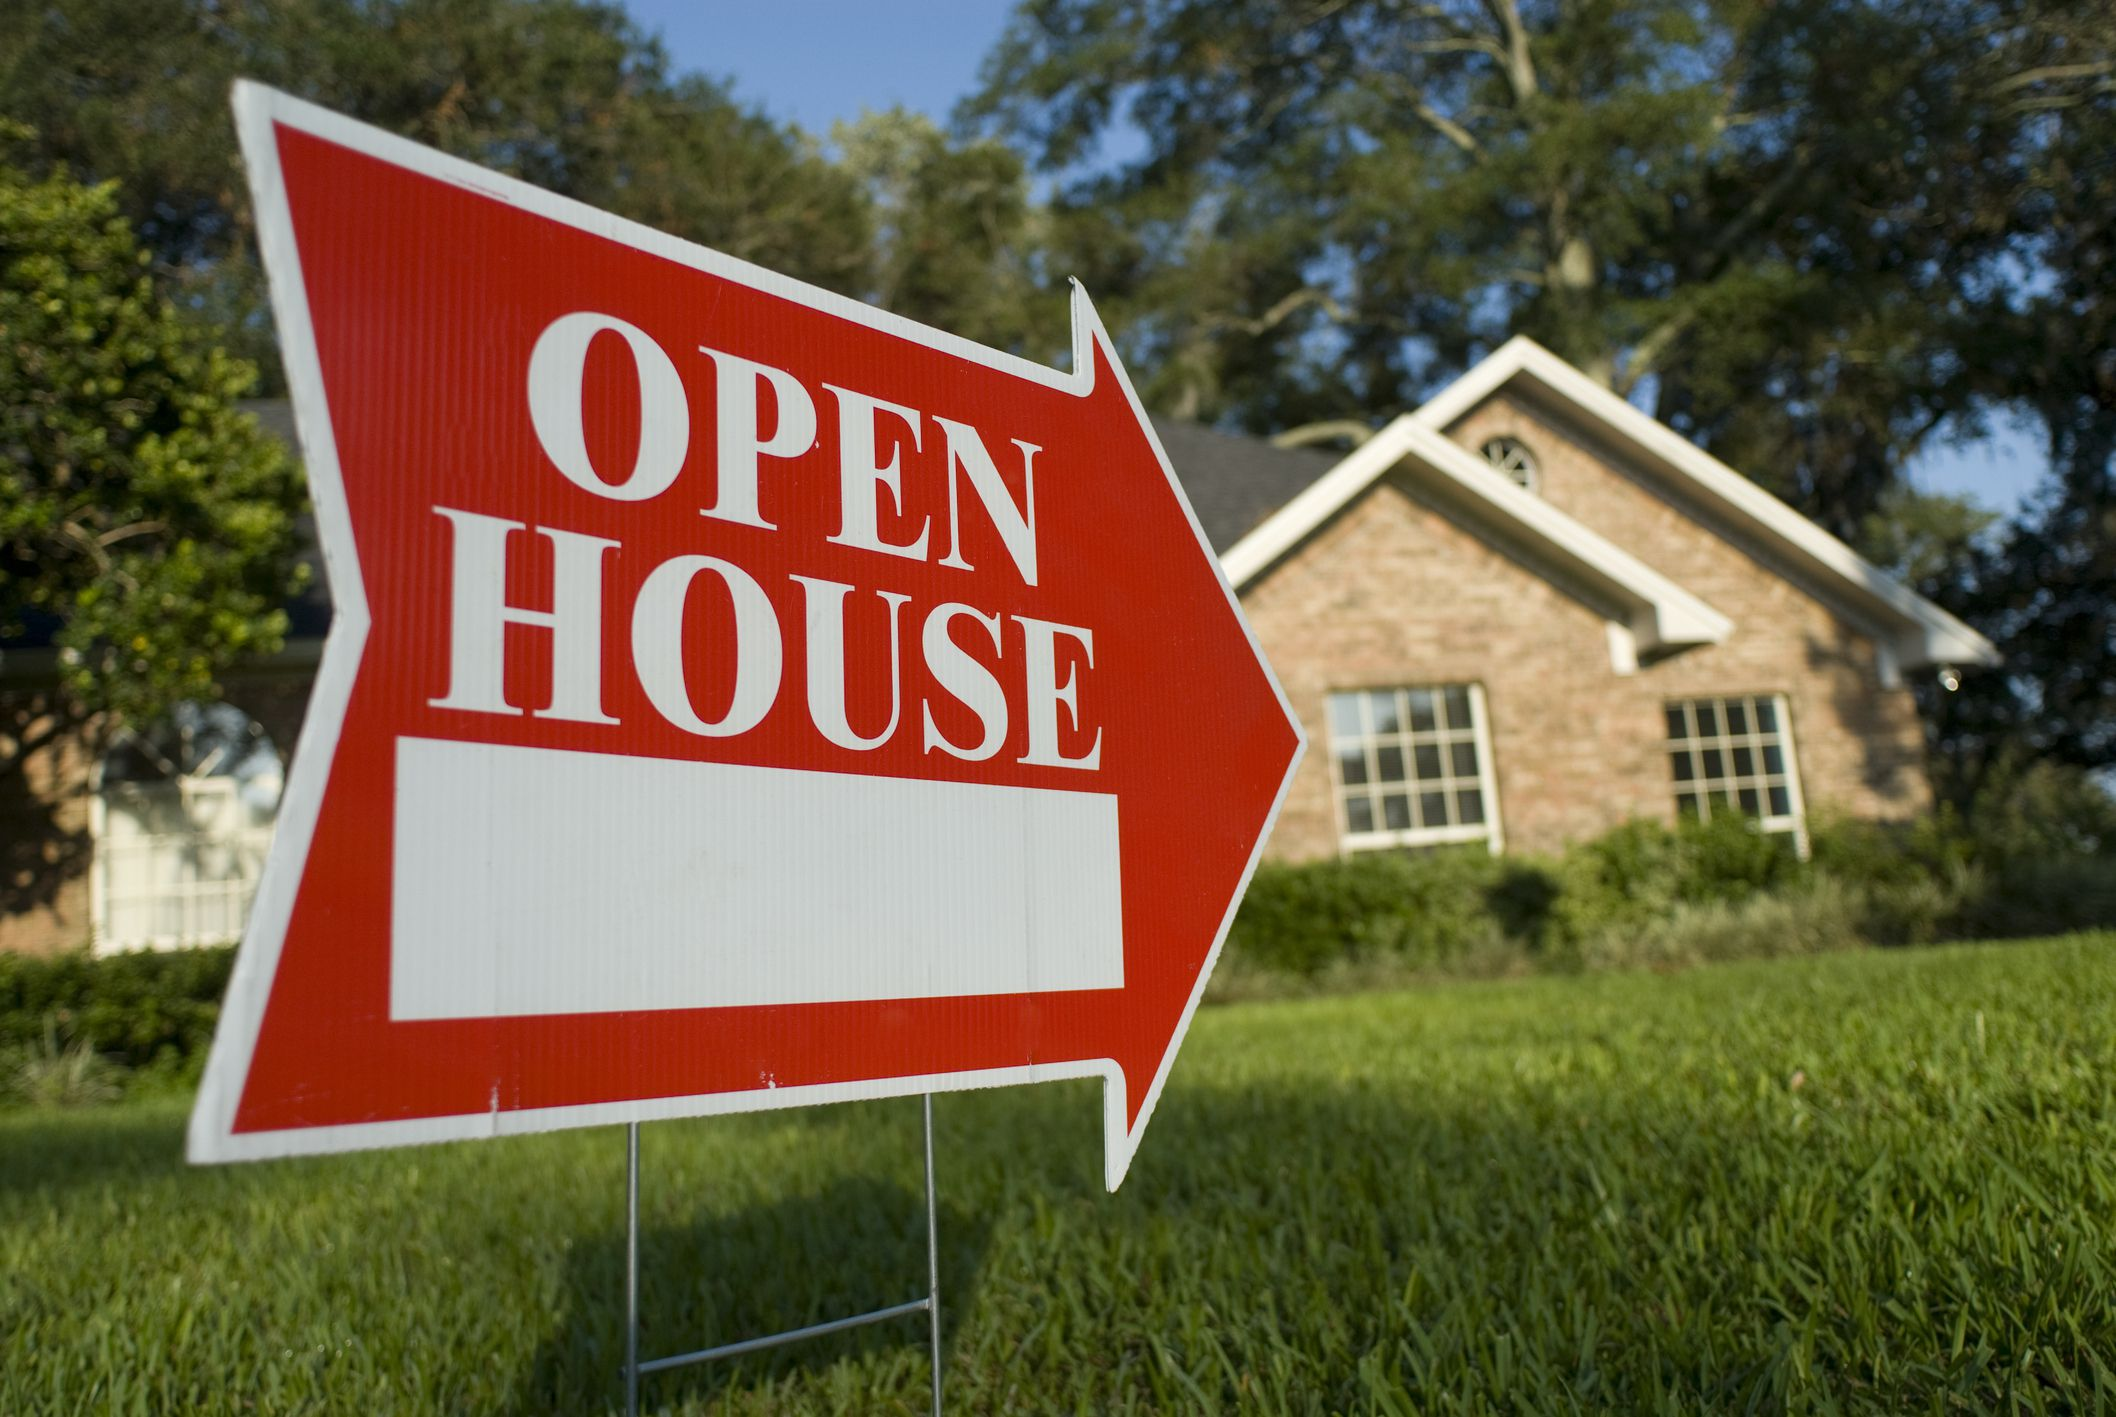 3 Helpful Tips for Preparing Your Home for a Successful Open House